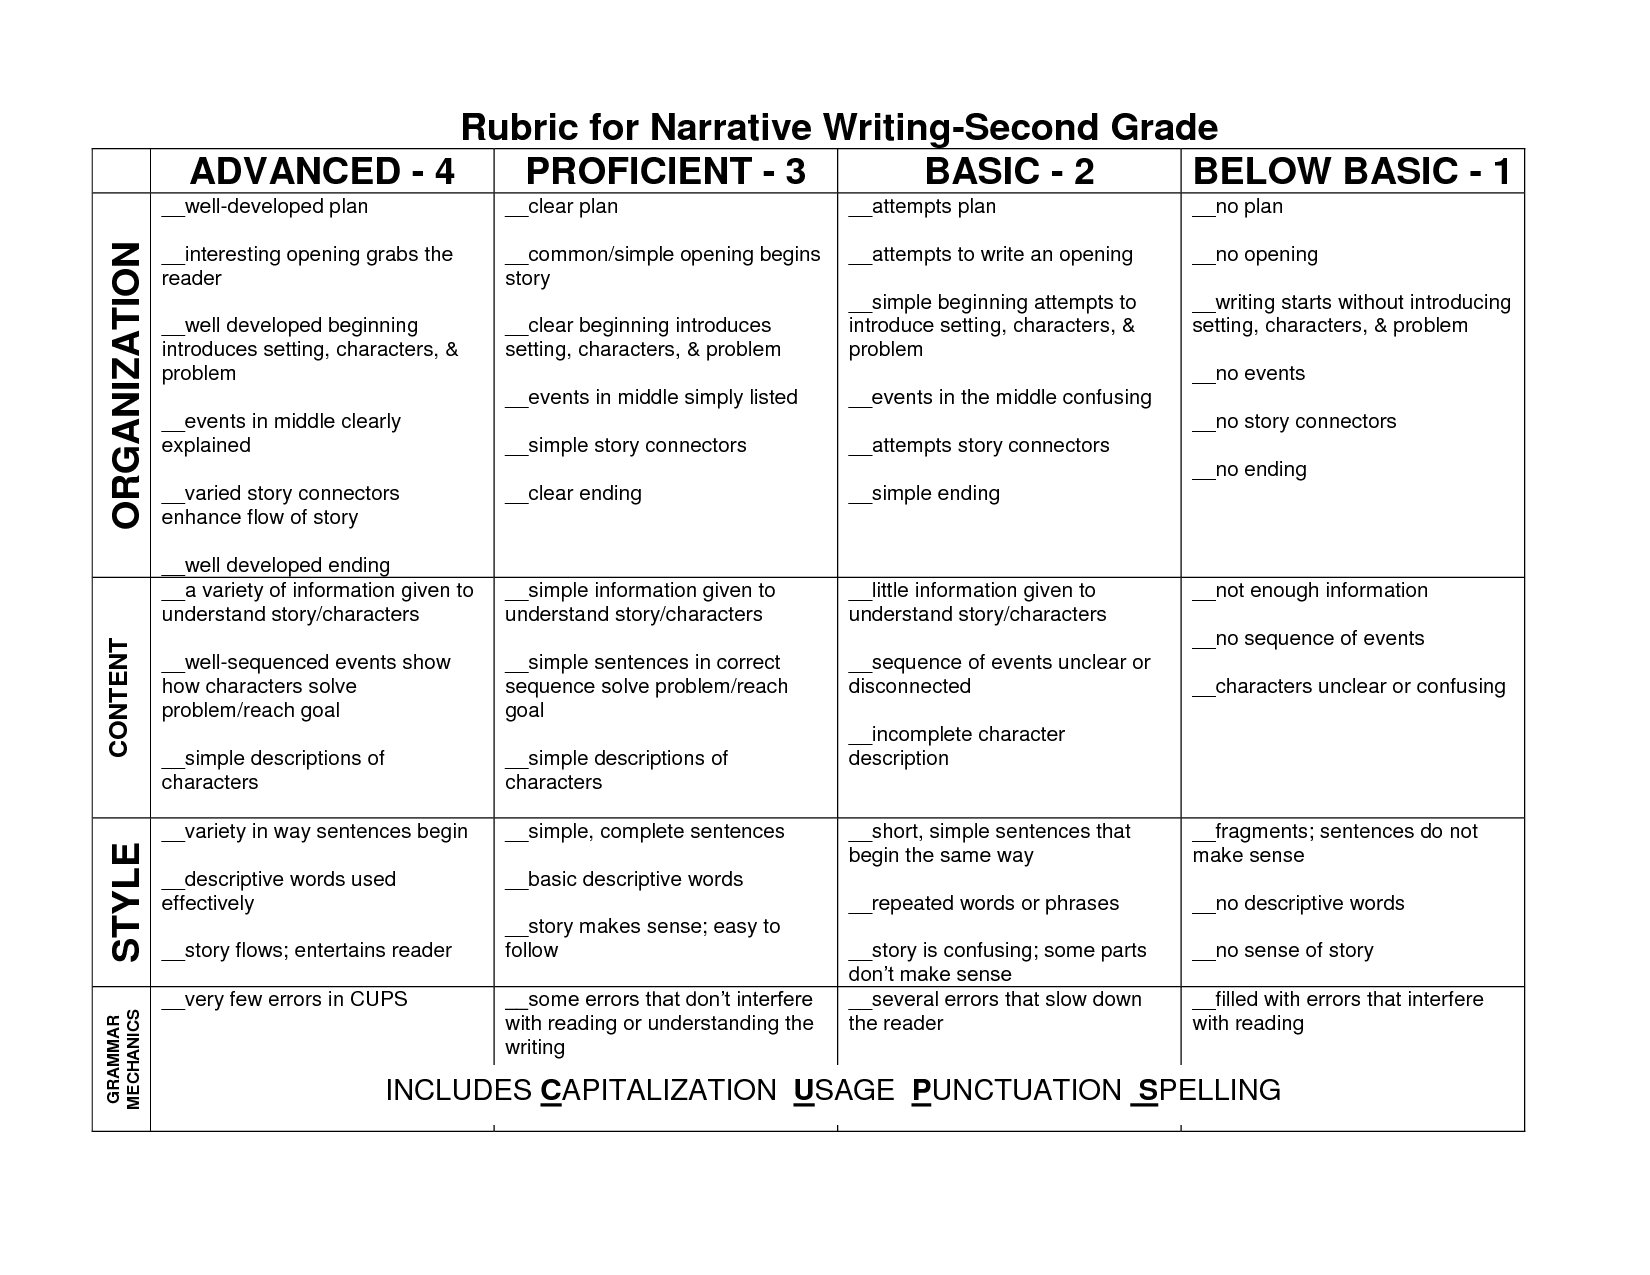 worksheet Esl Writing Worksheets 3rd grade writing rubric esl pinterest expository creative worksheets for teaching or efl